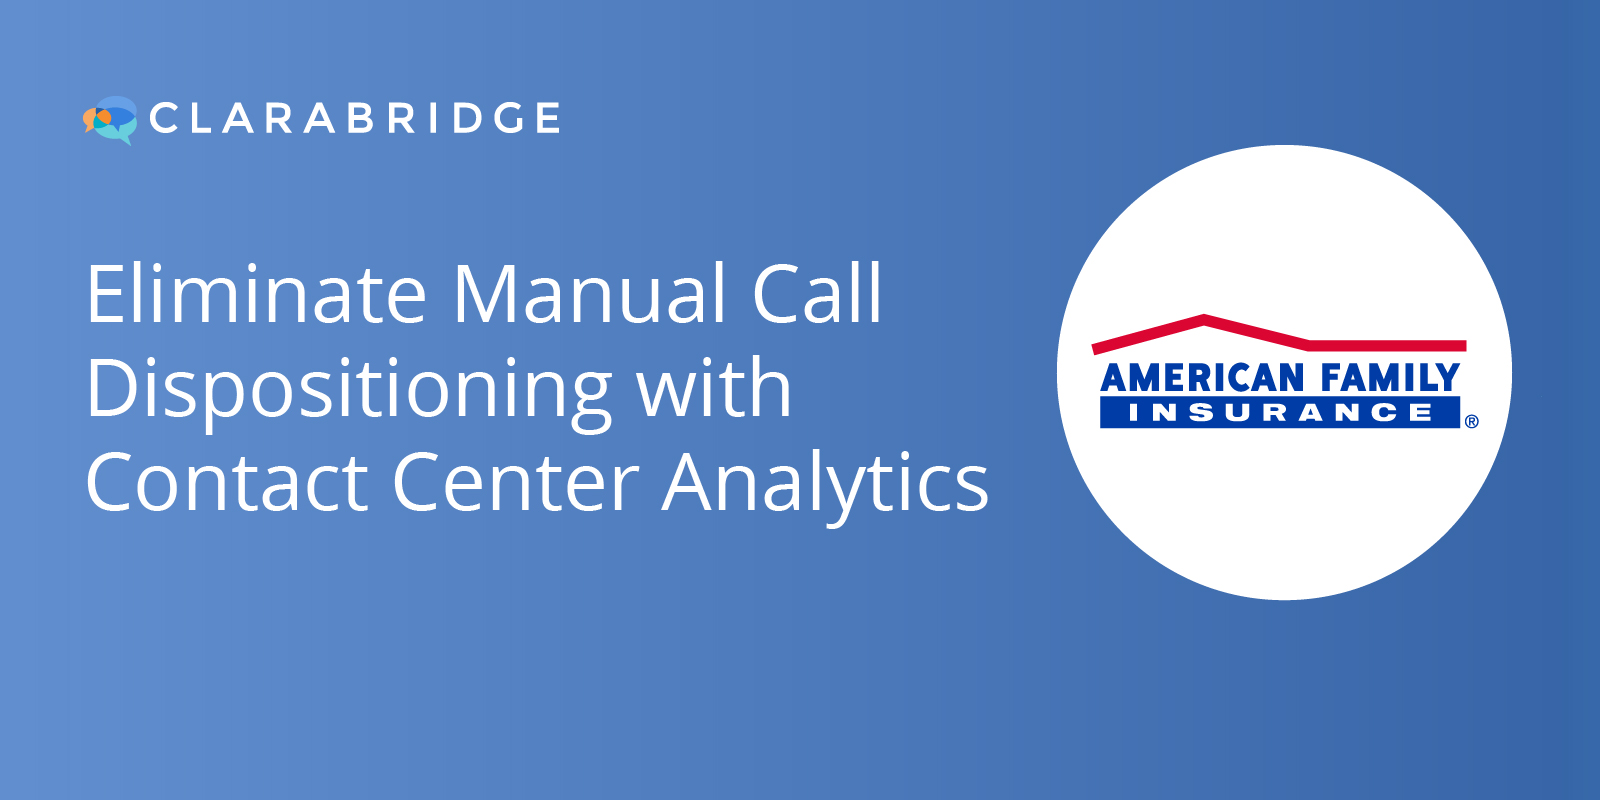 QATC Webinar: Eliminate Manual Call Dispositioning with Contact Center Analytics